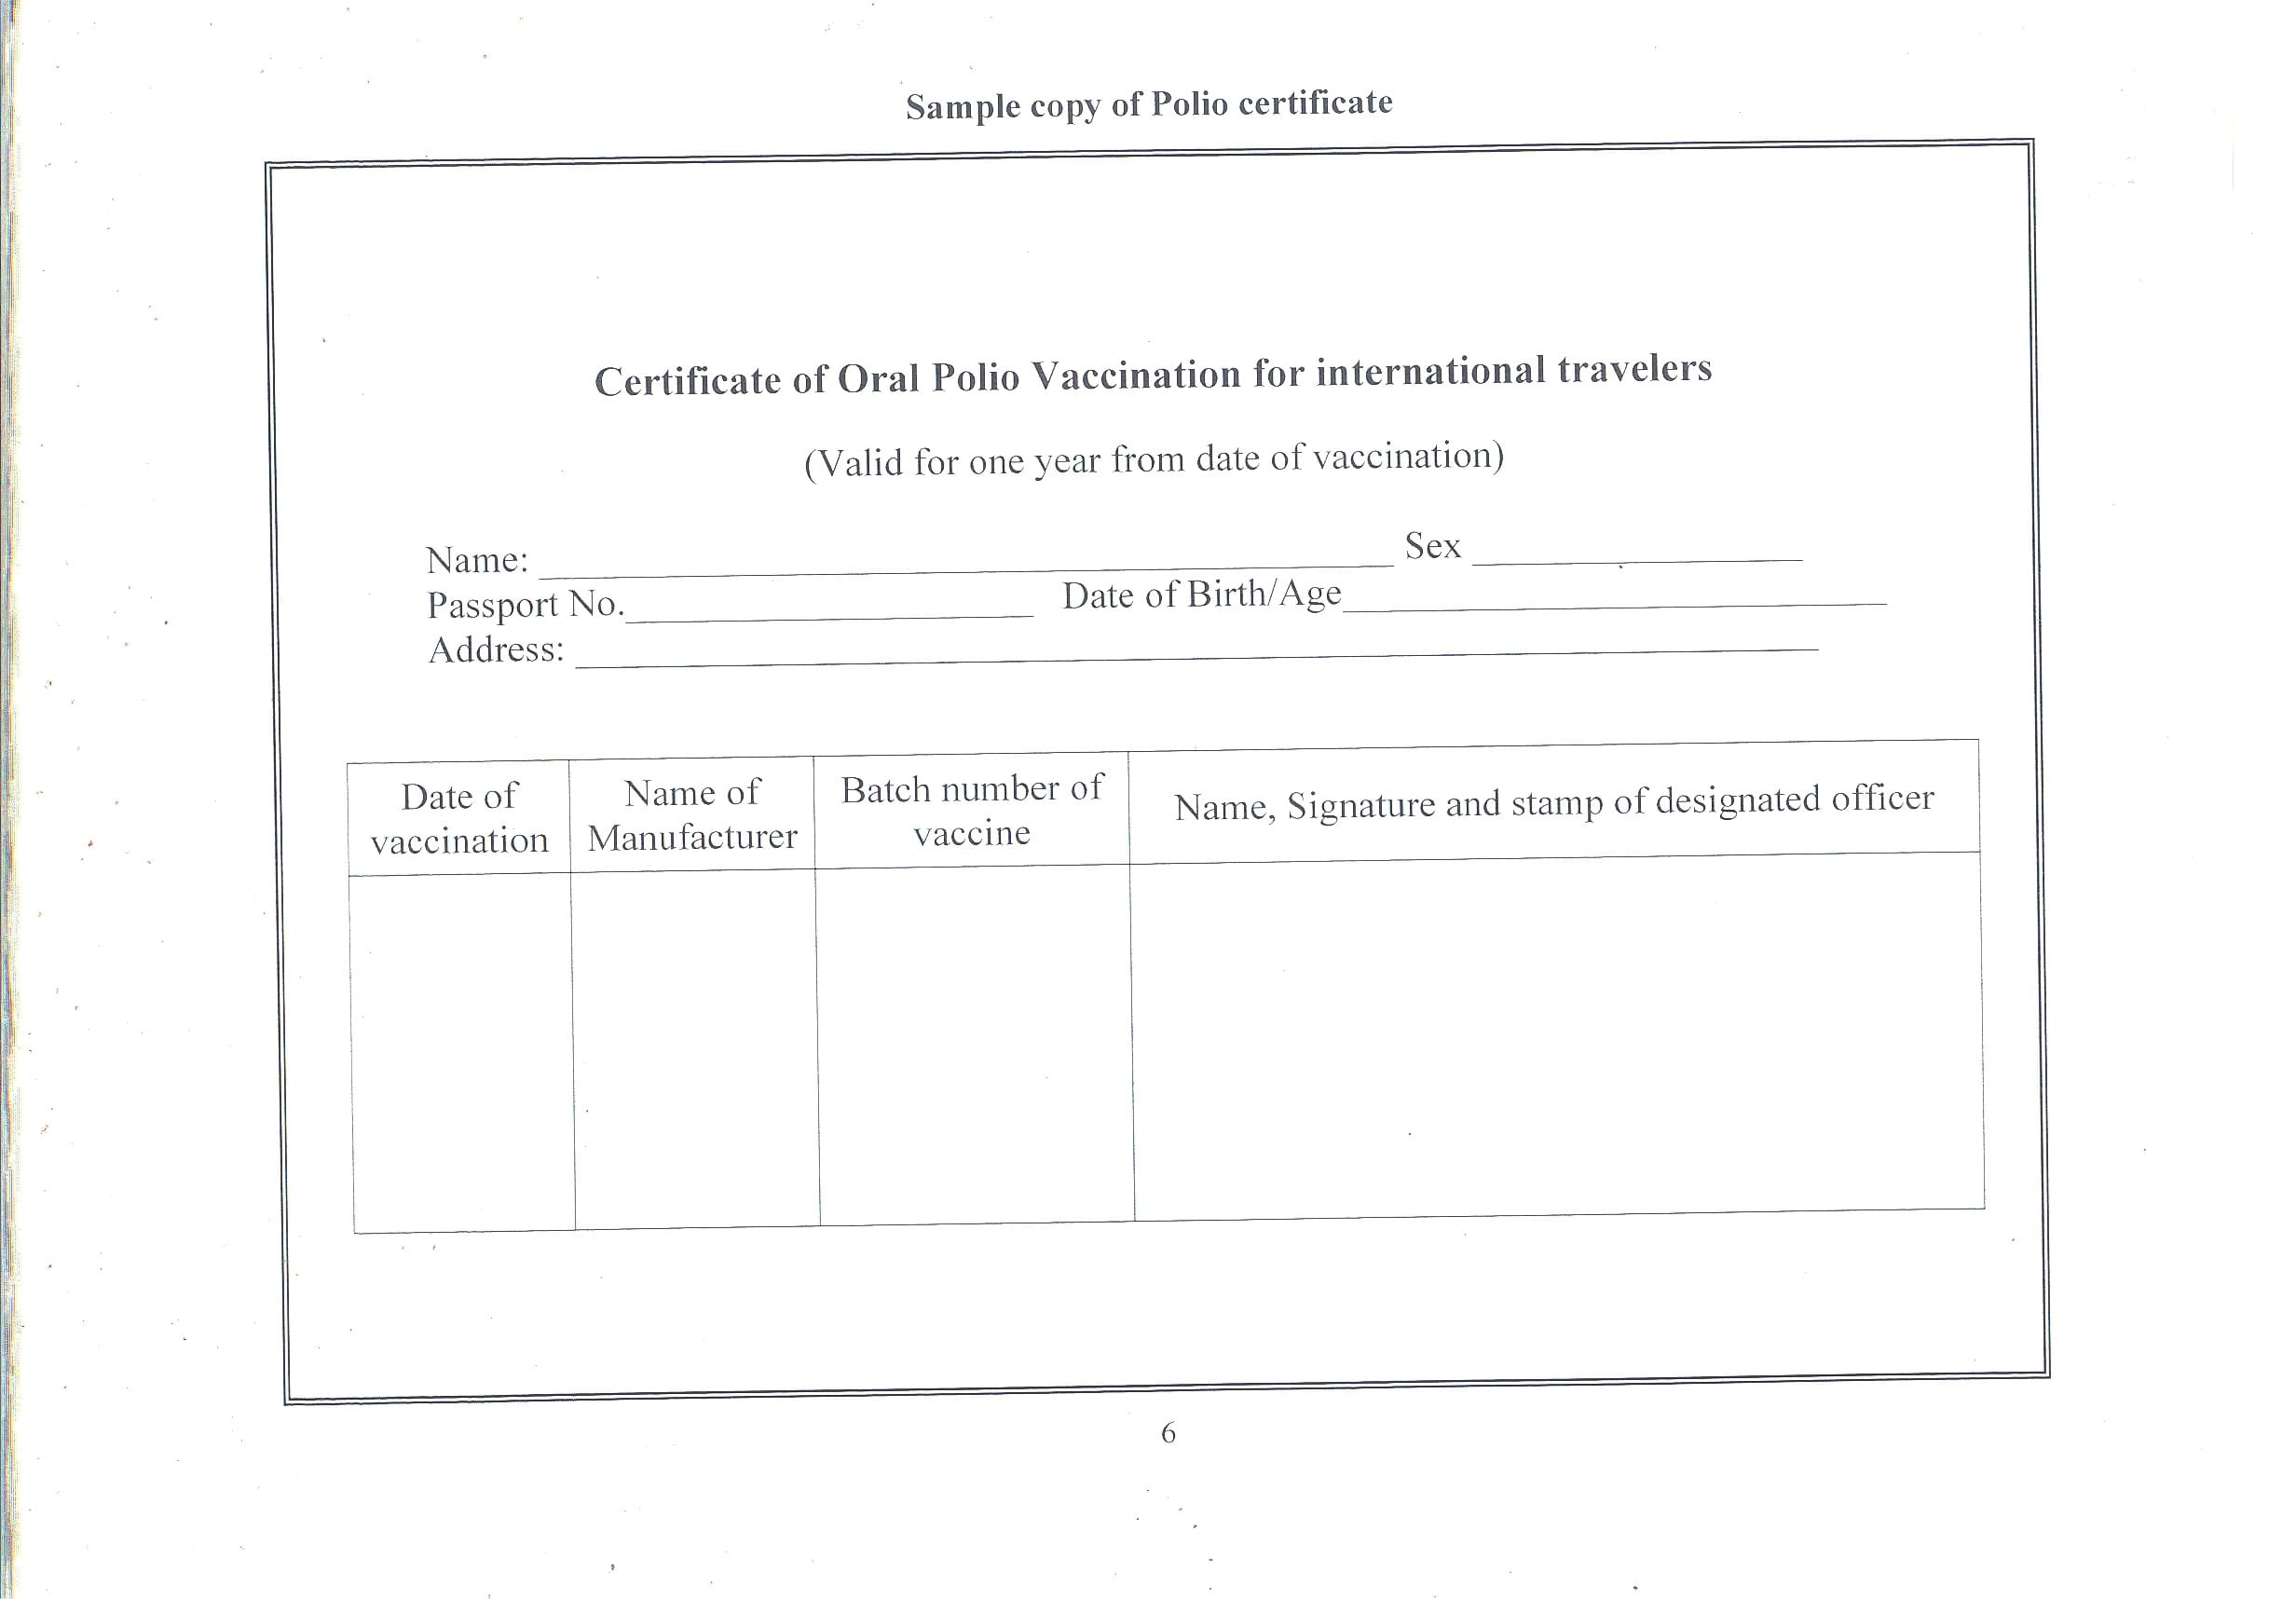 Medical Form For Work Permit South Africa on saudi arabia work permit, georgia work permit, papua new guinea work permit, singapore work permit, canada work permit,